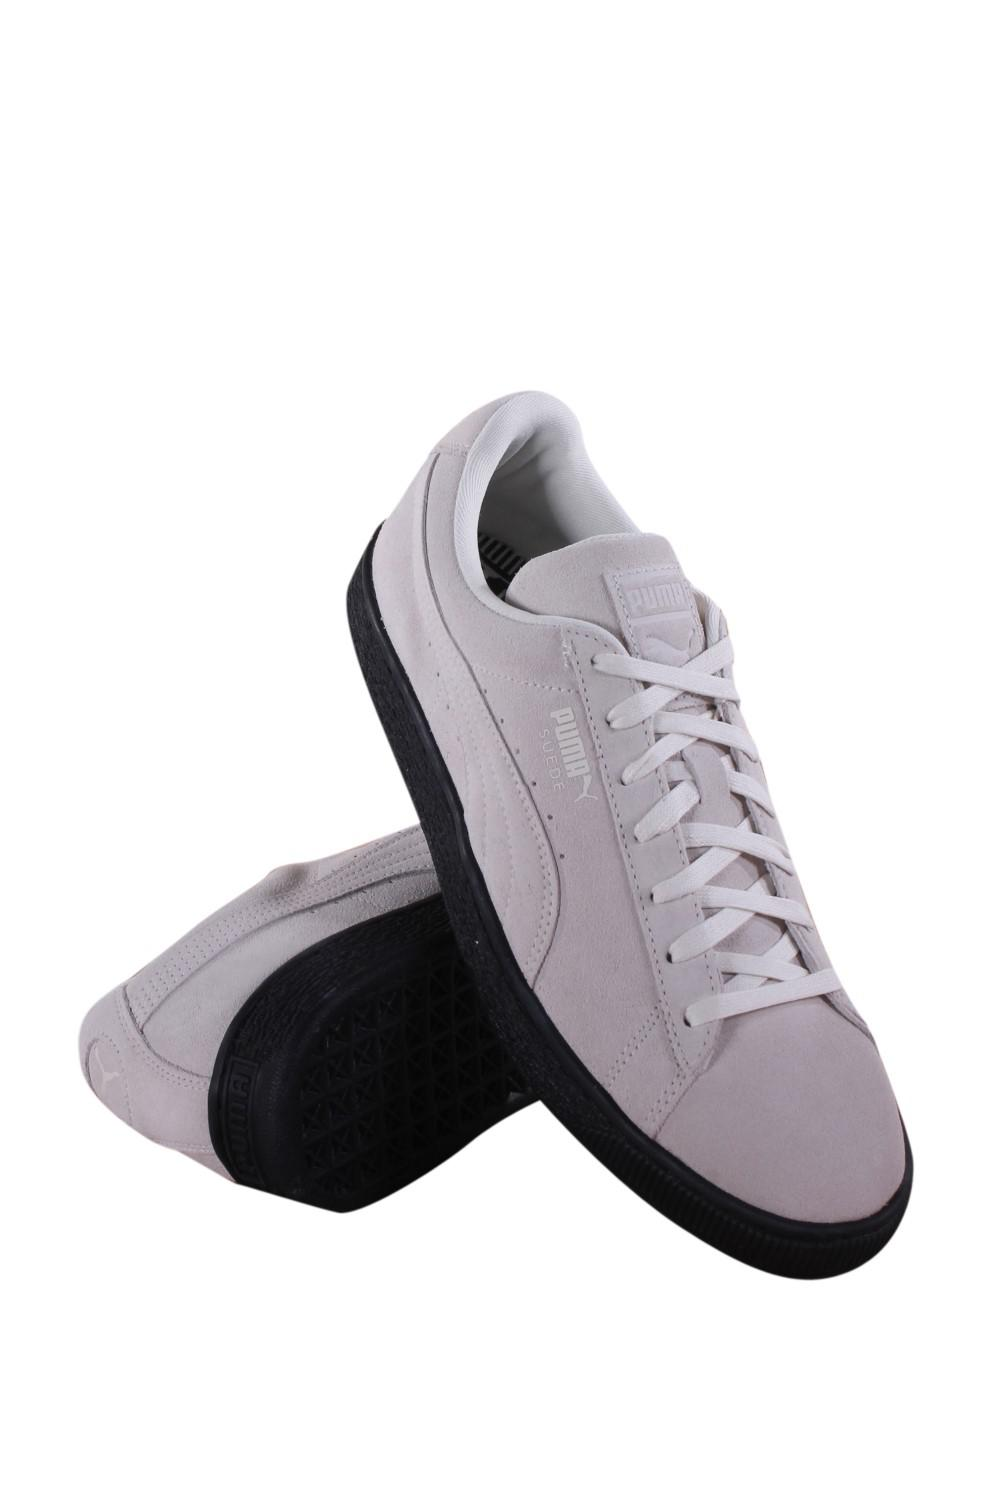 Lyst - Puma Suede Black Sole Whisper White Lace Up Sneakers in White ... be9bdc5ae